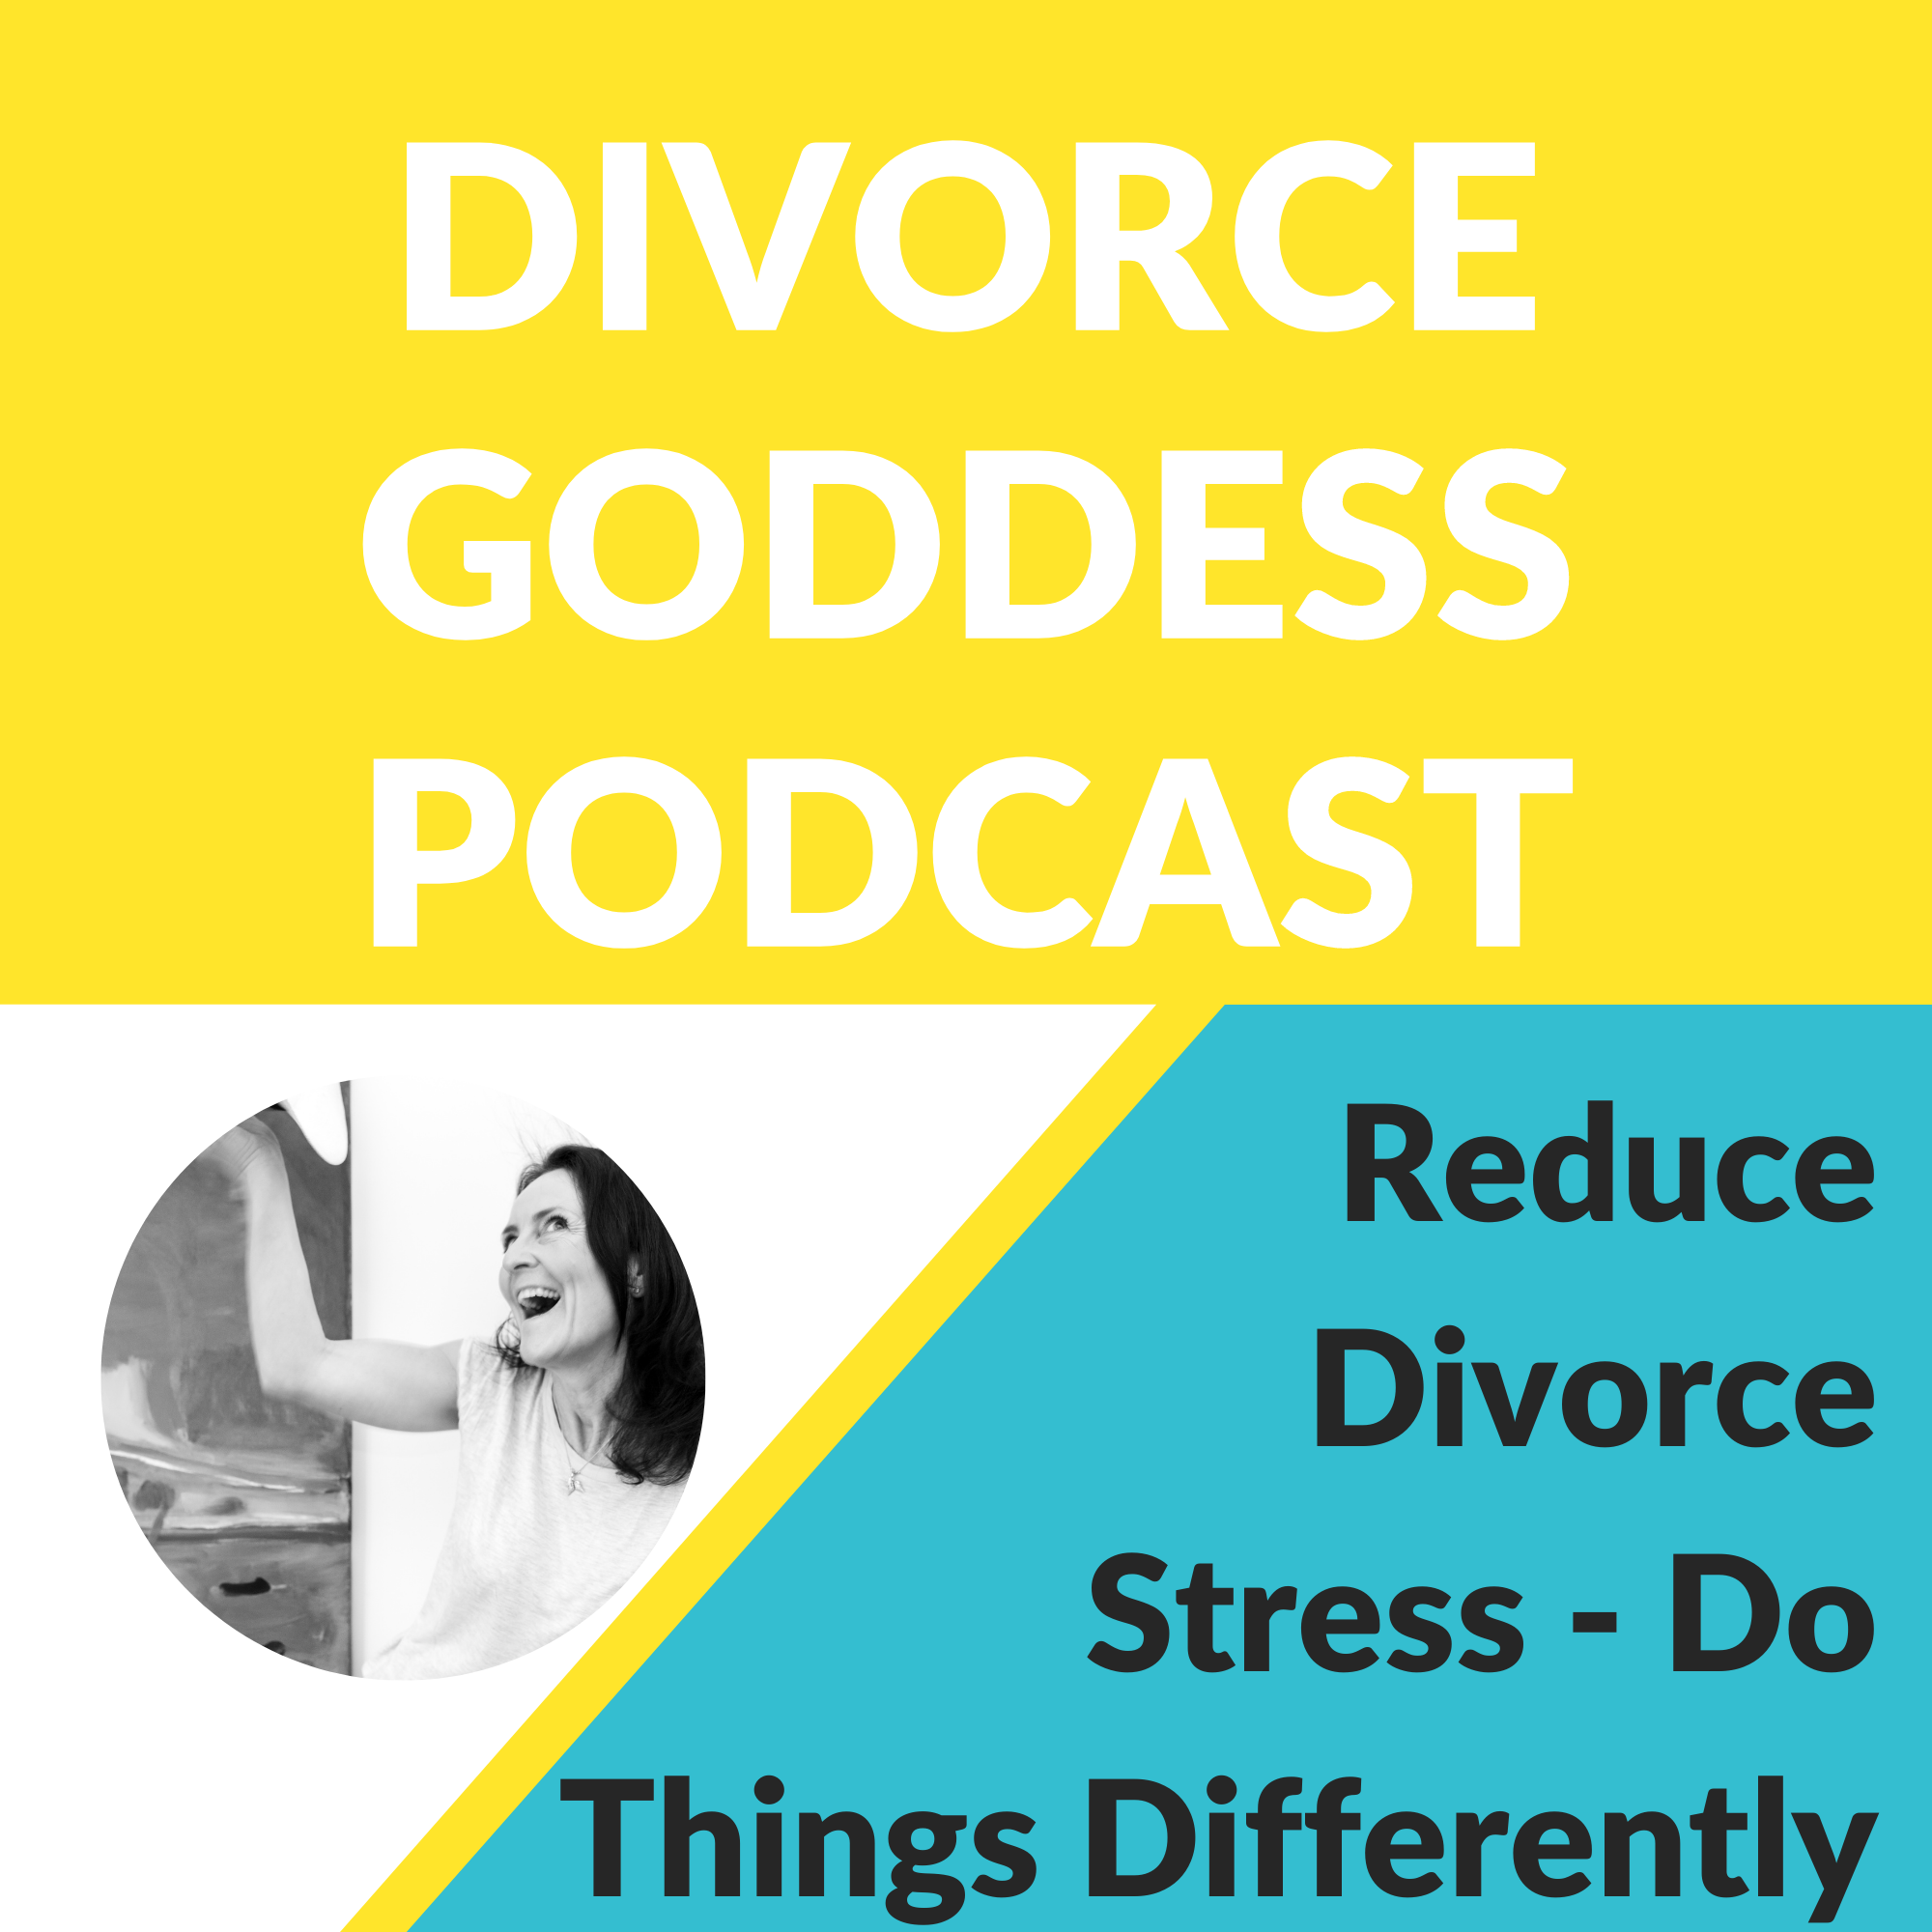 Divorce Goddess Podcast - How to Reduce Divorce Stress - Do Things Differently!